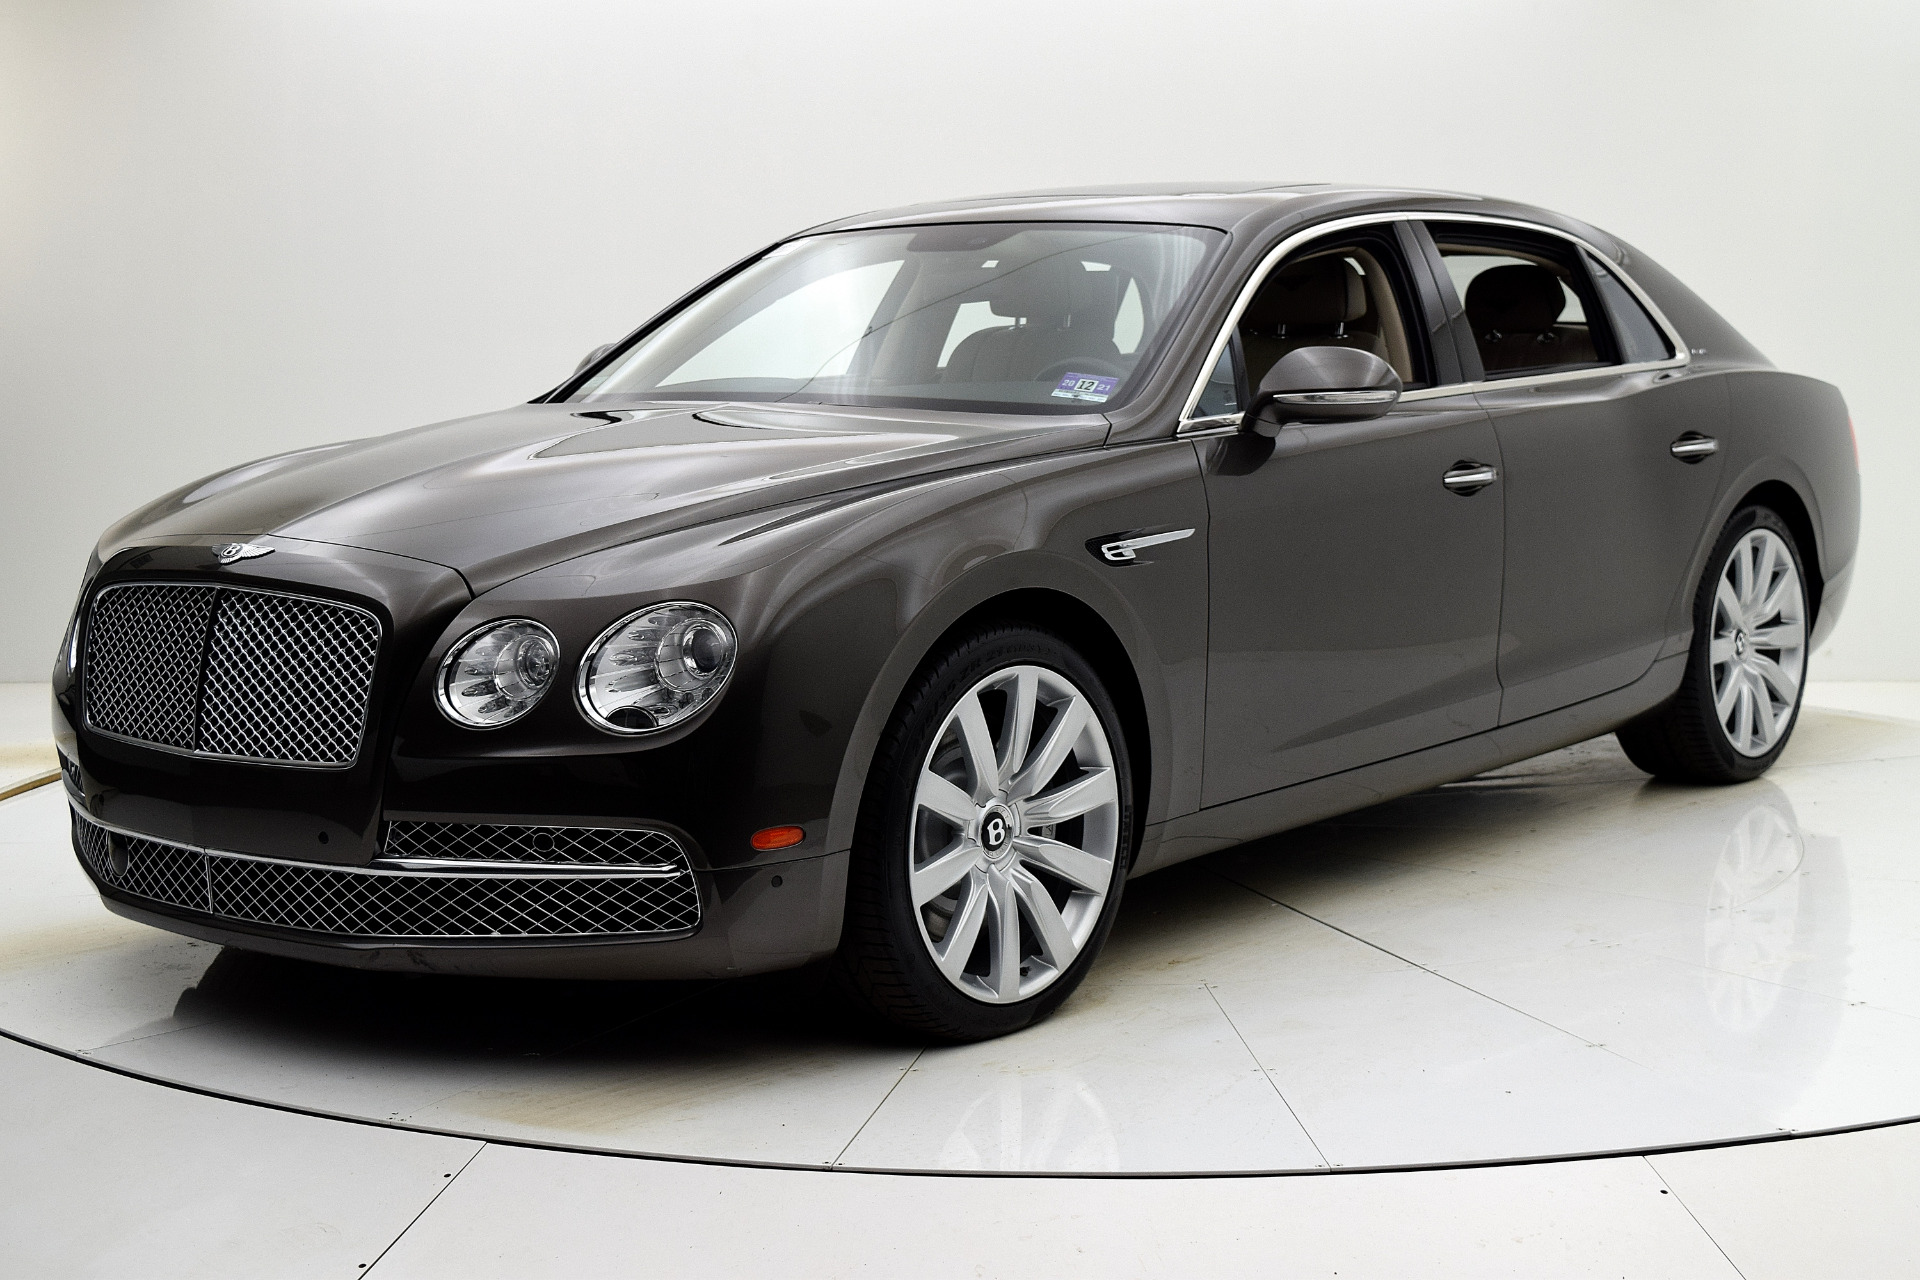 Used 2014 Bentley Flying Spur W12 for sale Sold at F.C. Kerbeck Aston Martin in Palmyra NJ 08065 2